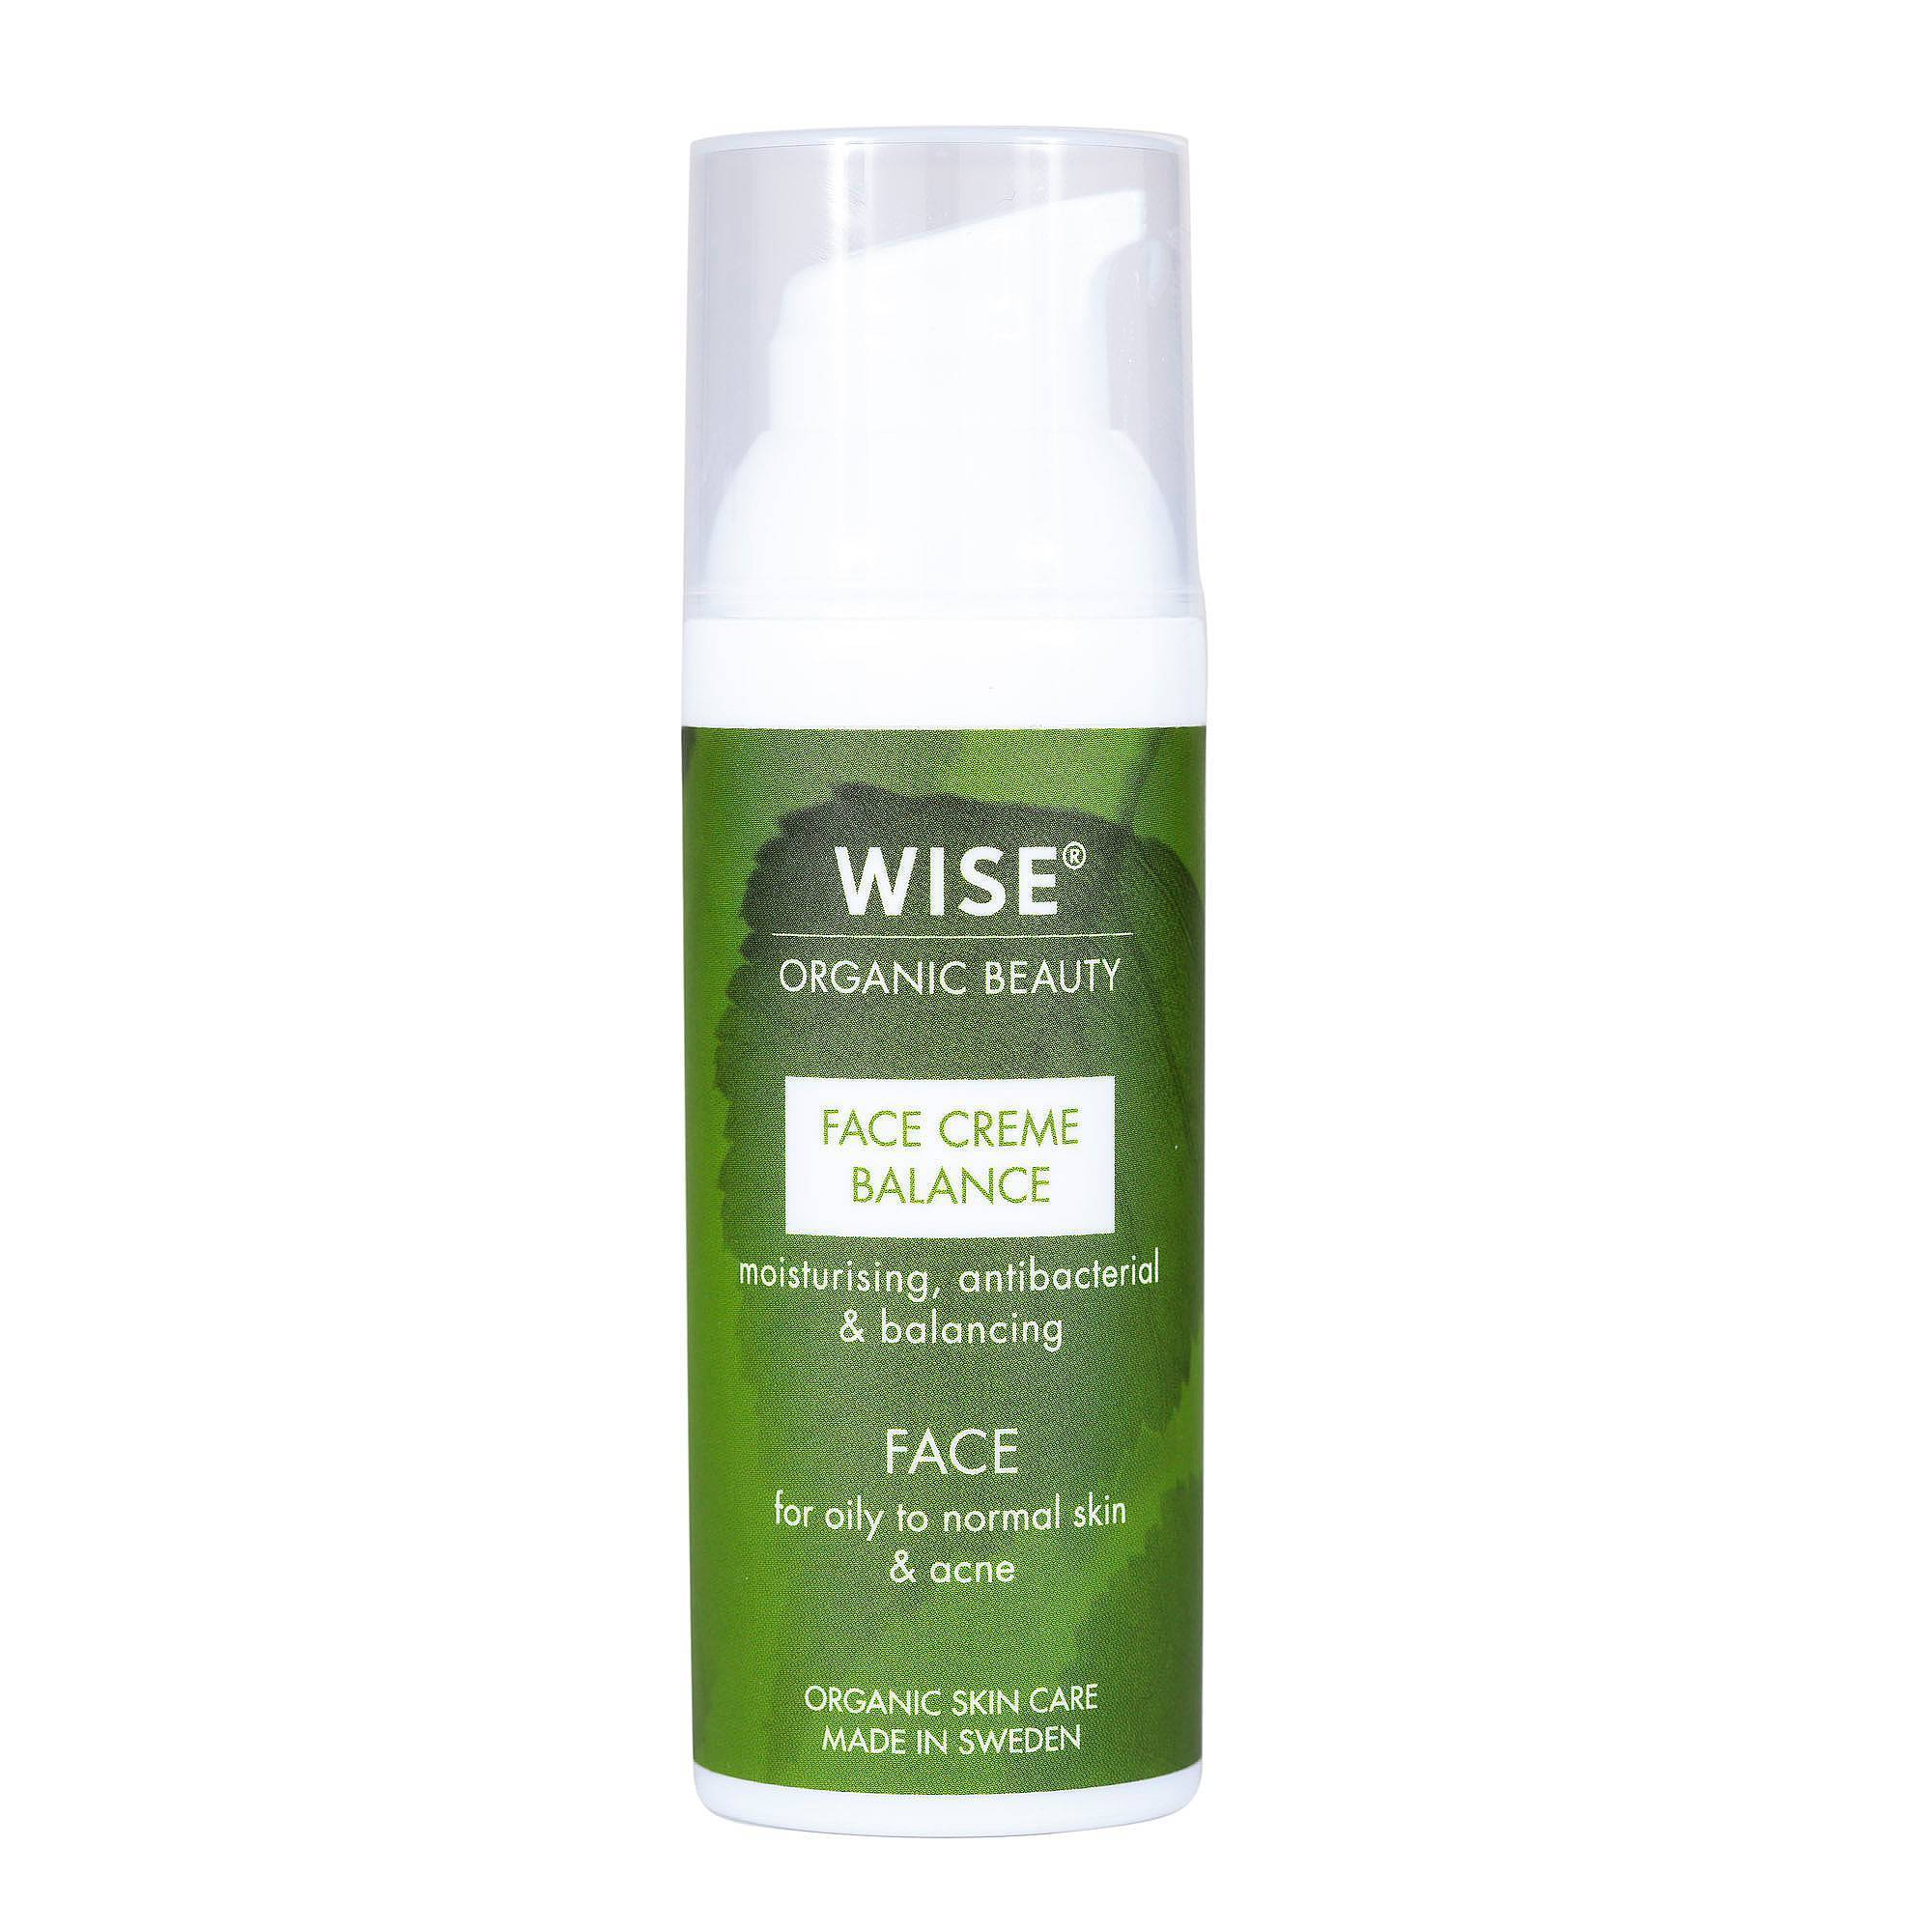 Wise Naturkosmetik Face creme Balans 50 ml